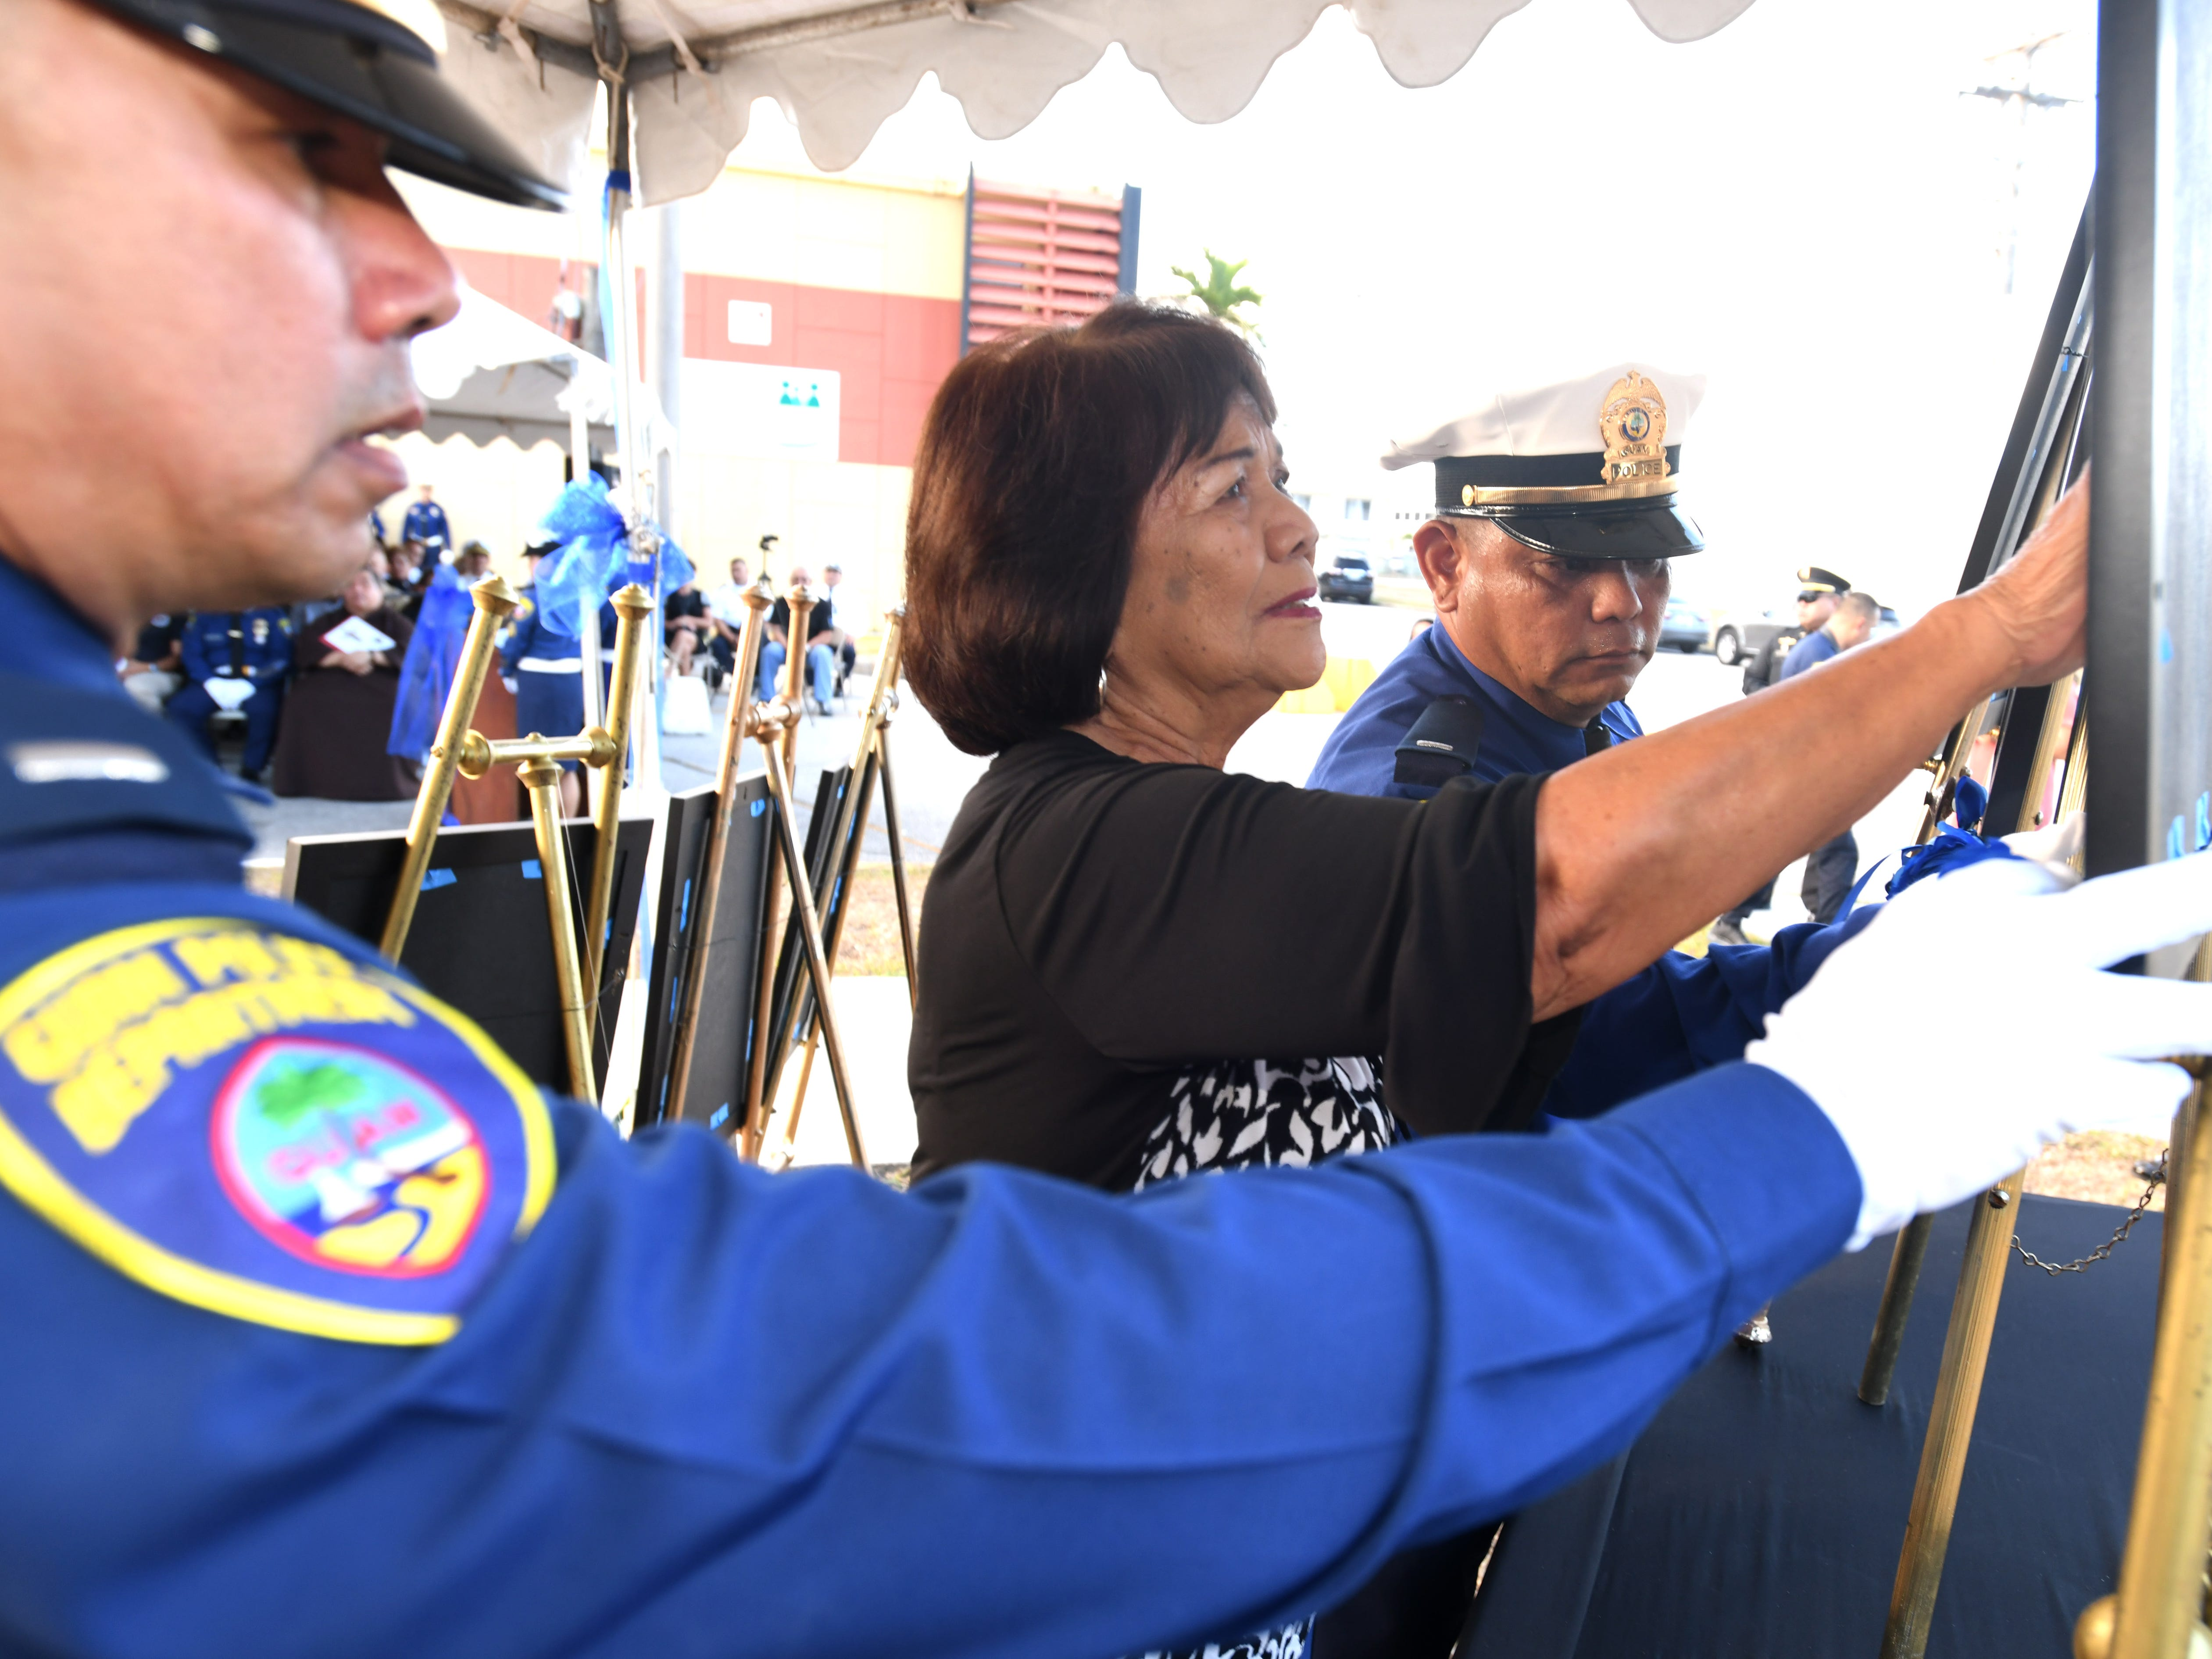 Meding Santos Snyder, center, reaches out to gently touch the photo of her brother, Police Officer Juan Santos, during the Peace Officers' Memorial Service and Wreath Laying Ceremony held at the Guam Police Department's Badge Memorial Park in Hagåtña on Wednesday, May 15, 2019.